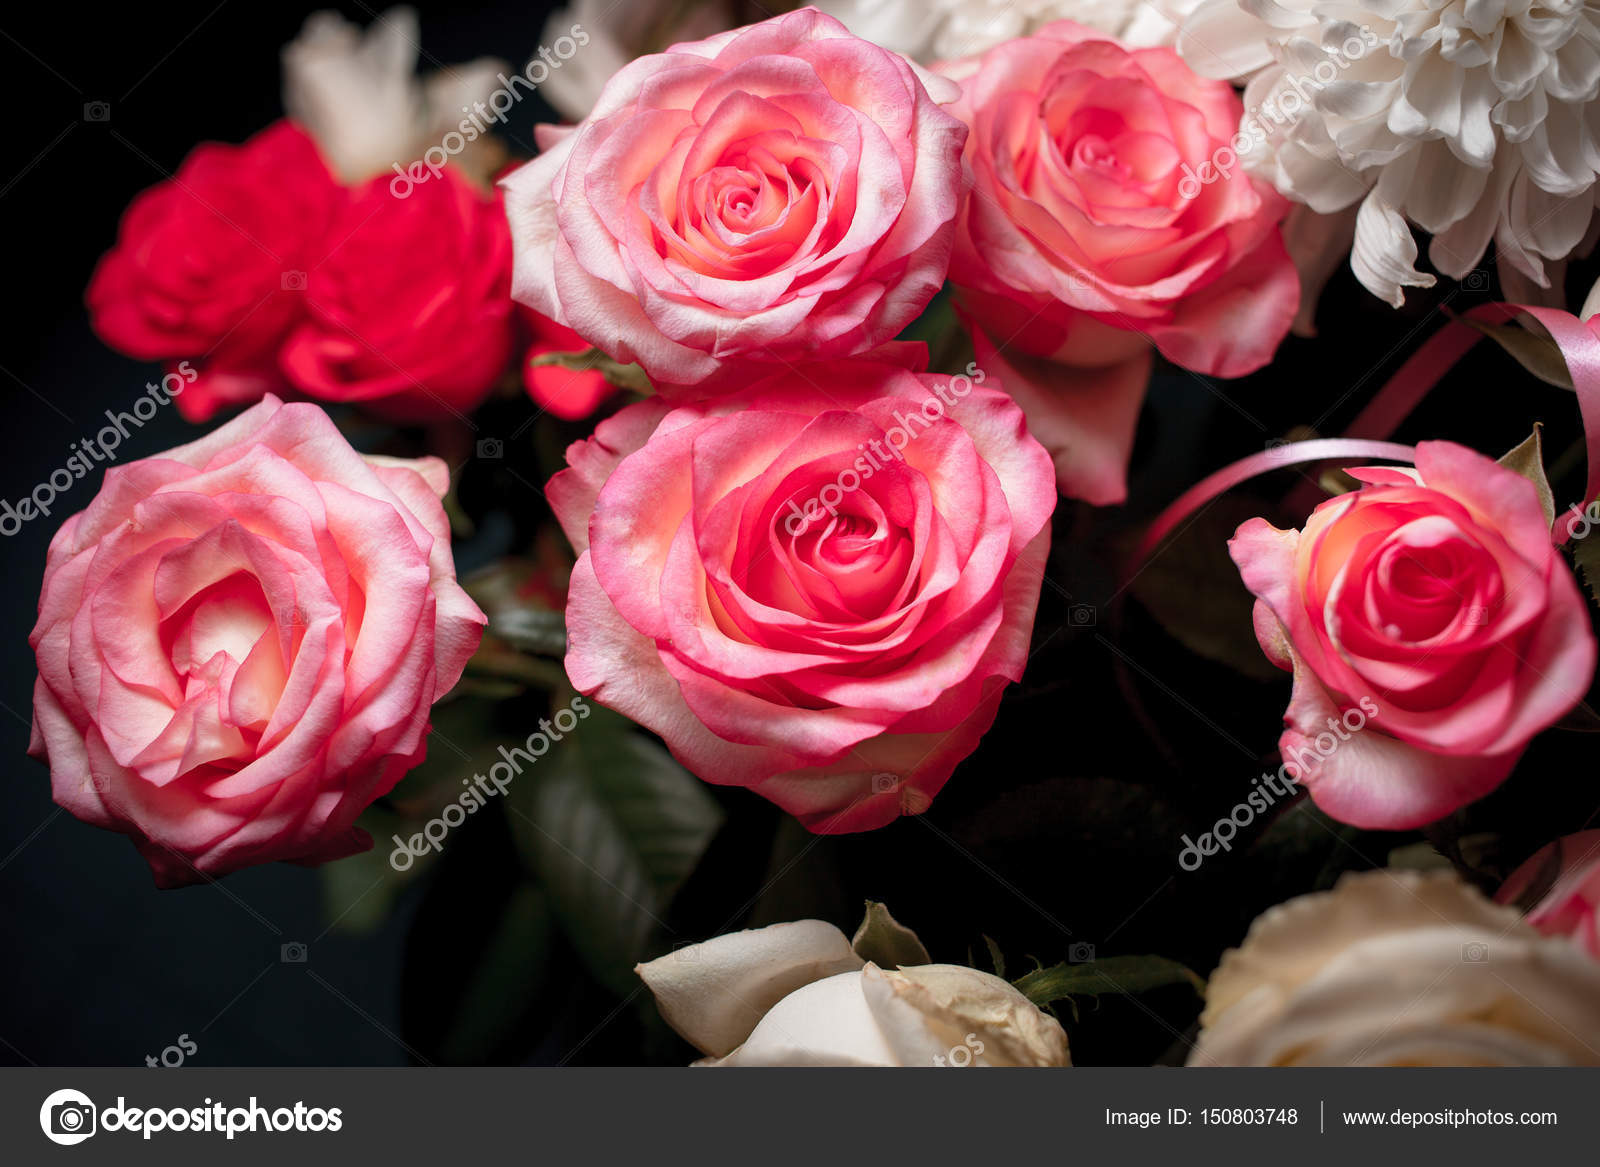 Still Life Of Rose Bouquet Flower Beautiful Fresh Pink Roses Rose